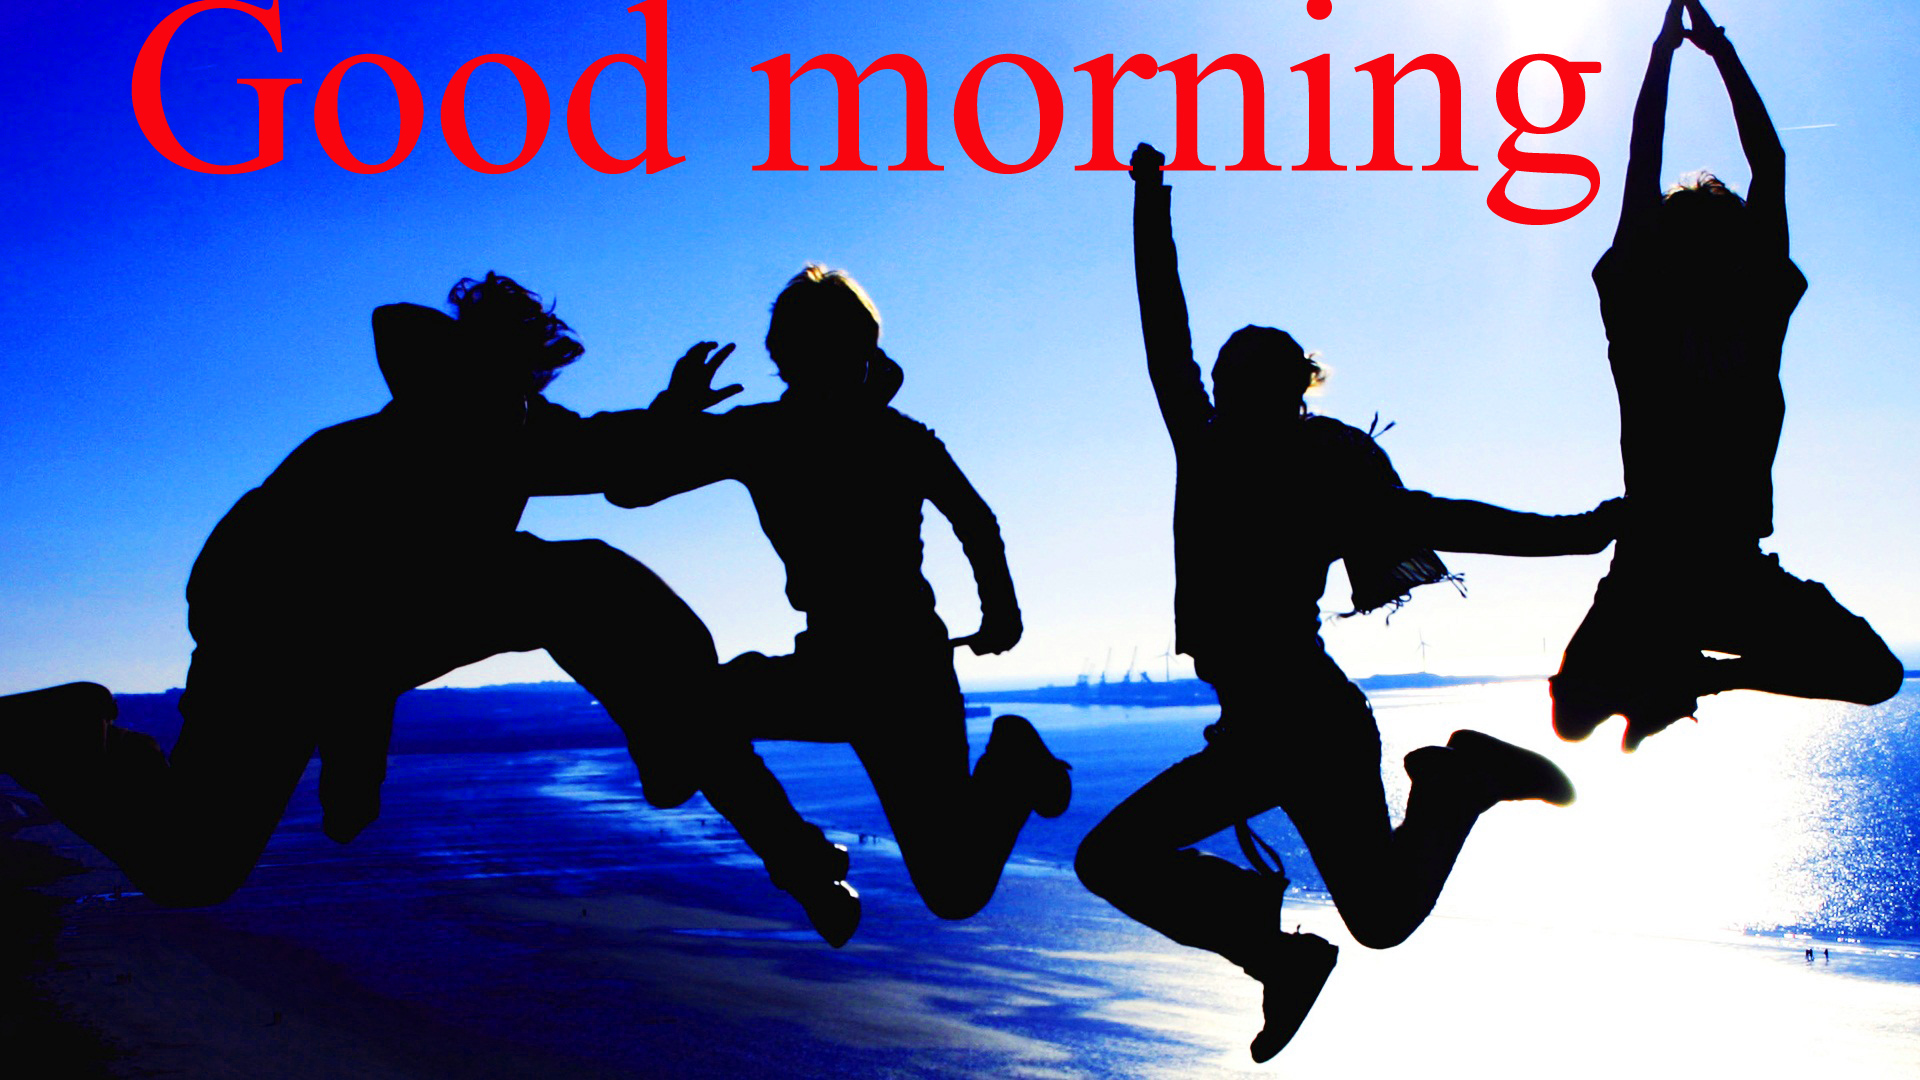 Good morning wishes for my dear friend Photo Wallpaper Images Free Download